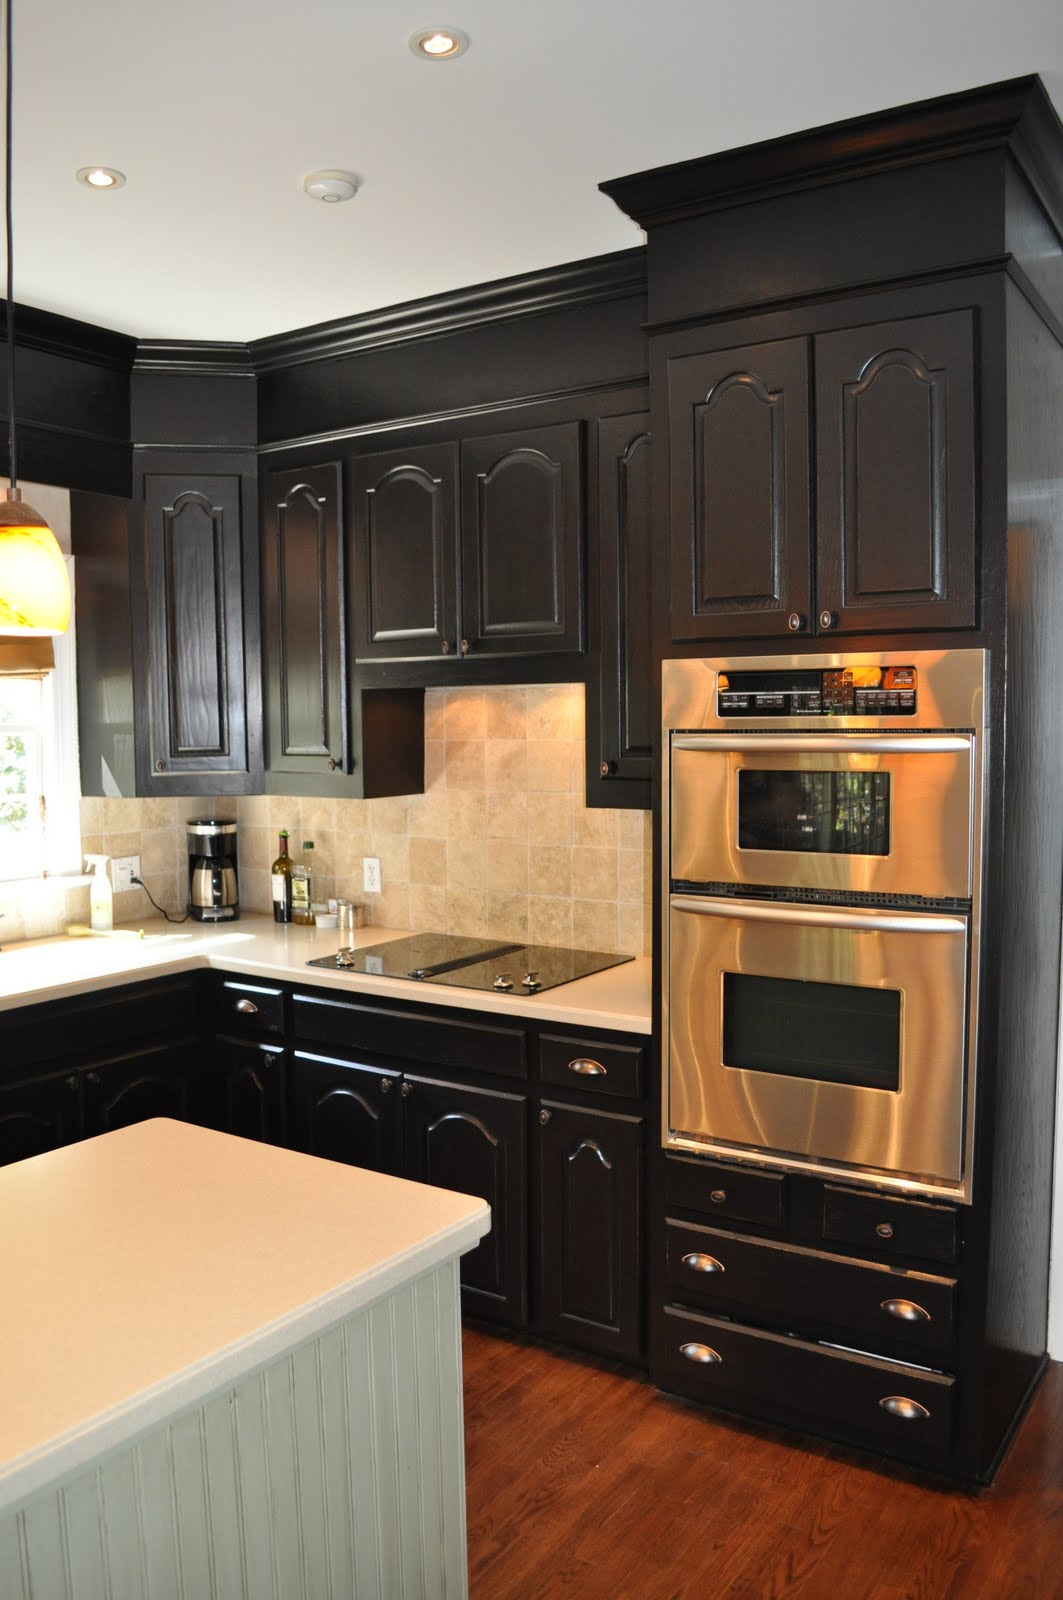 Kitchen Cabinets With Black Trim The Collected Interior Black Painted Kitchen Cabinets